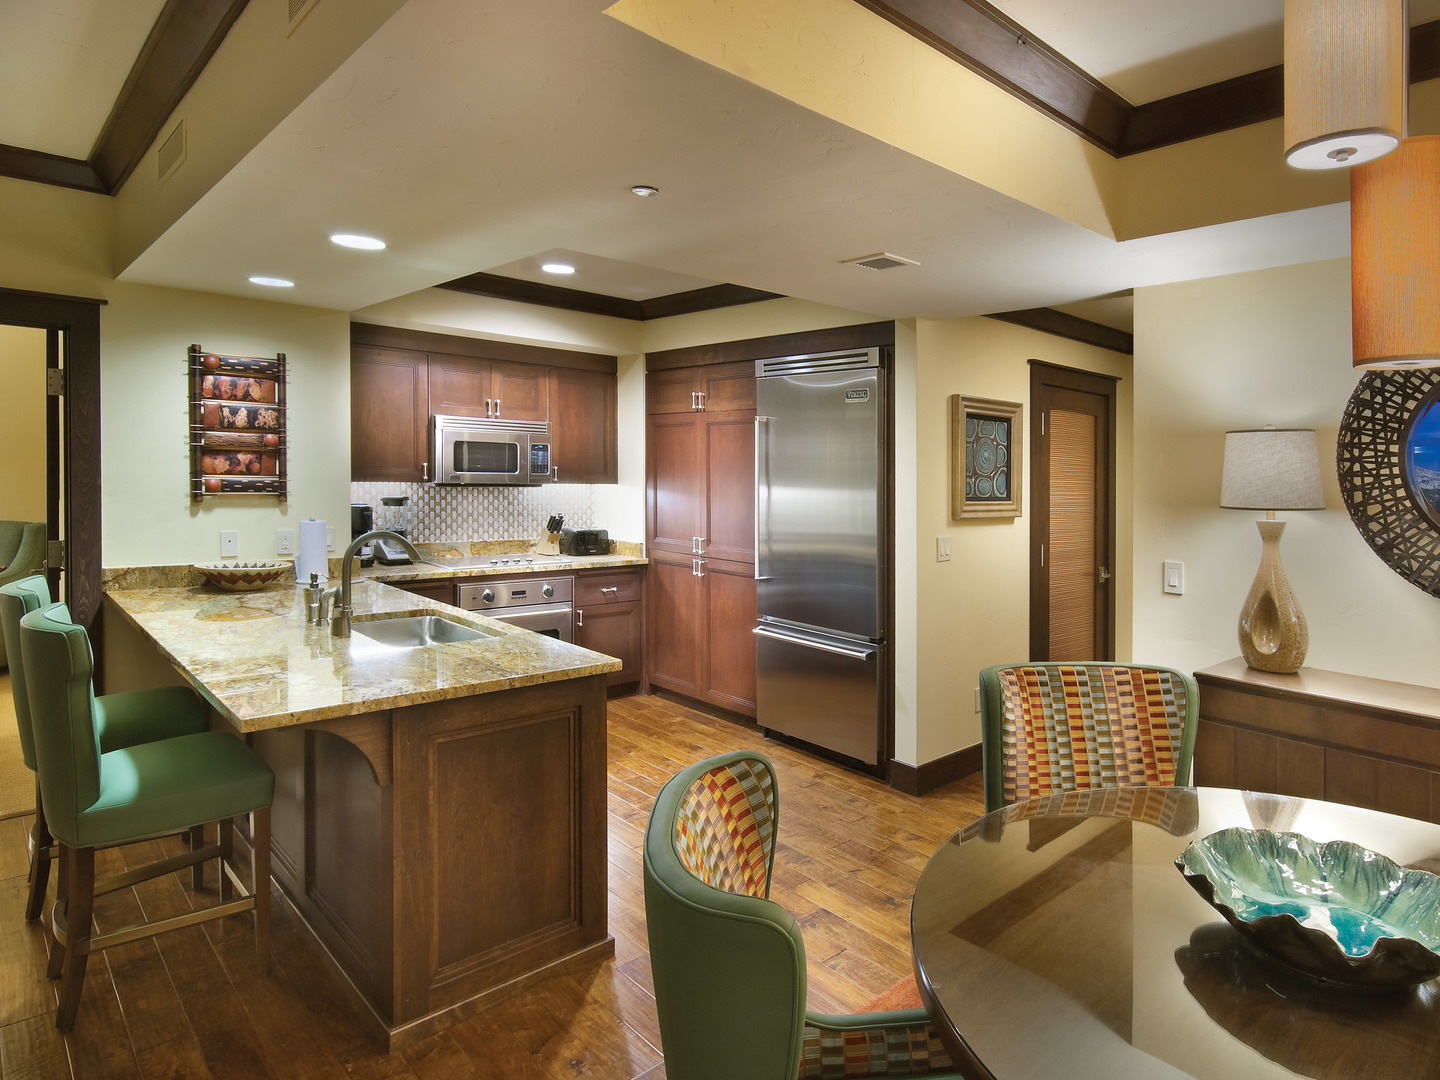 The Ritz-Carlton Club<span class='trademark'>®</span>, Lake Tahoe Residence Dining Room/Kitchen. The Ritz-Carlton Club<span class='trademark'>®</span>, Lake Tahoe is located in Truckee, California United States.